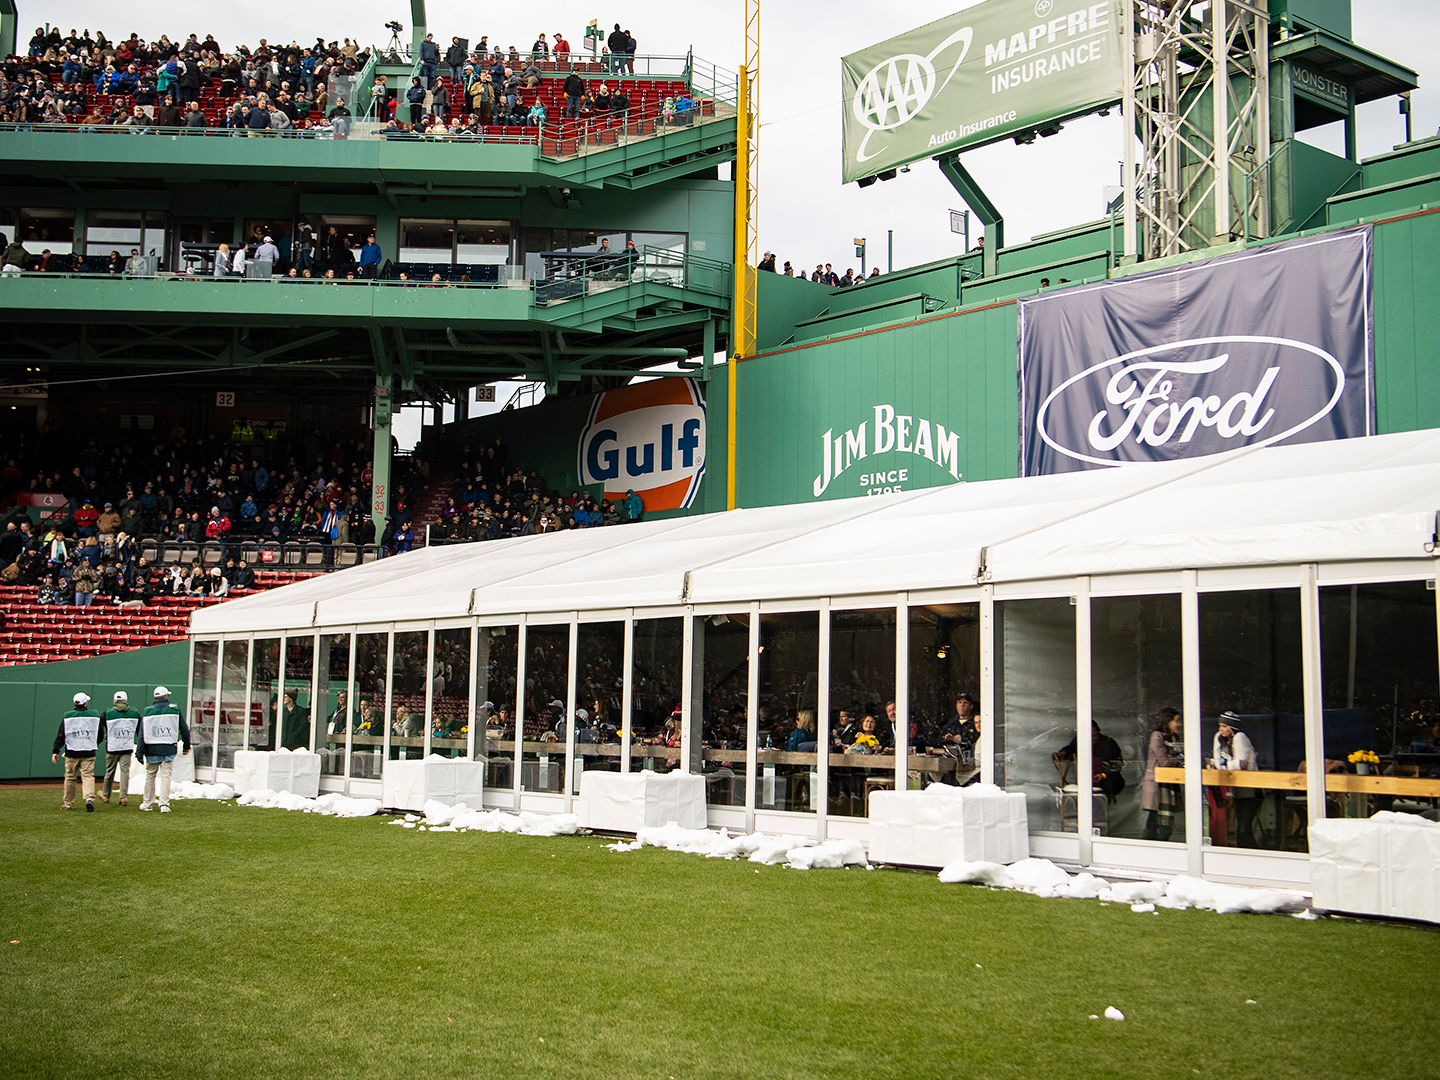 PEAK Tent set up in outfield of Fenway Park for Harvard-Yale football game